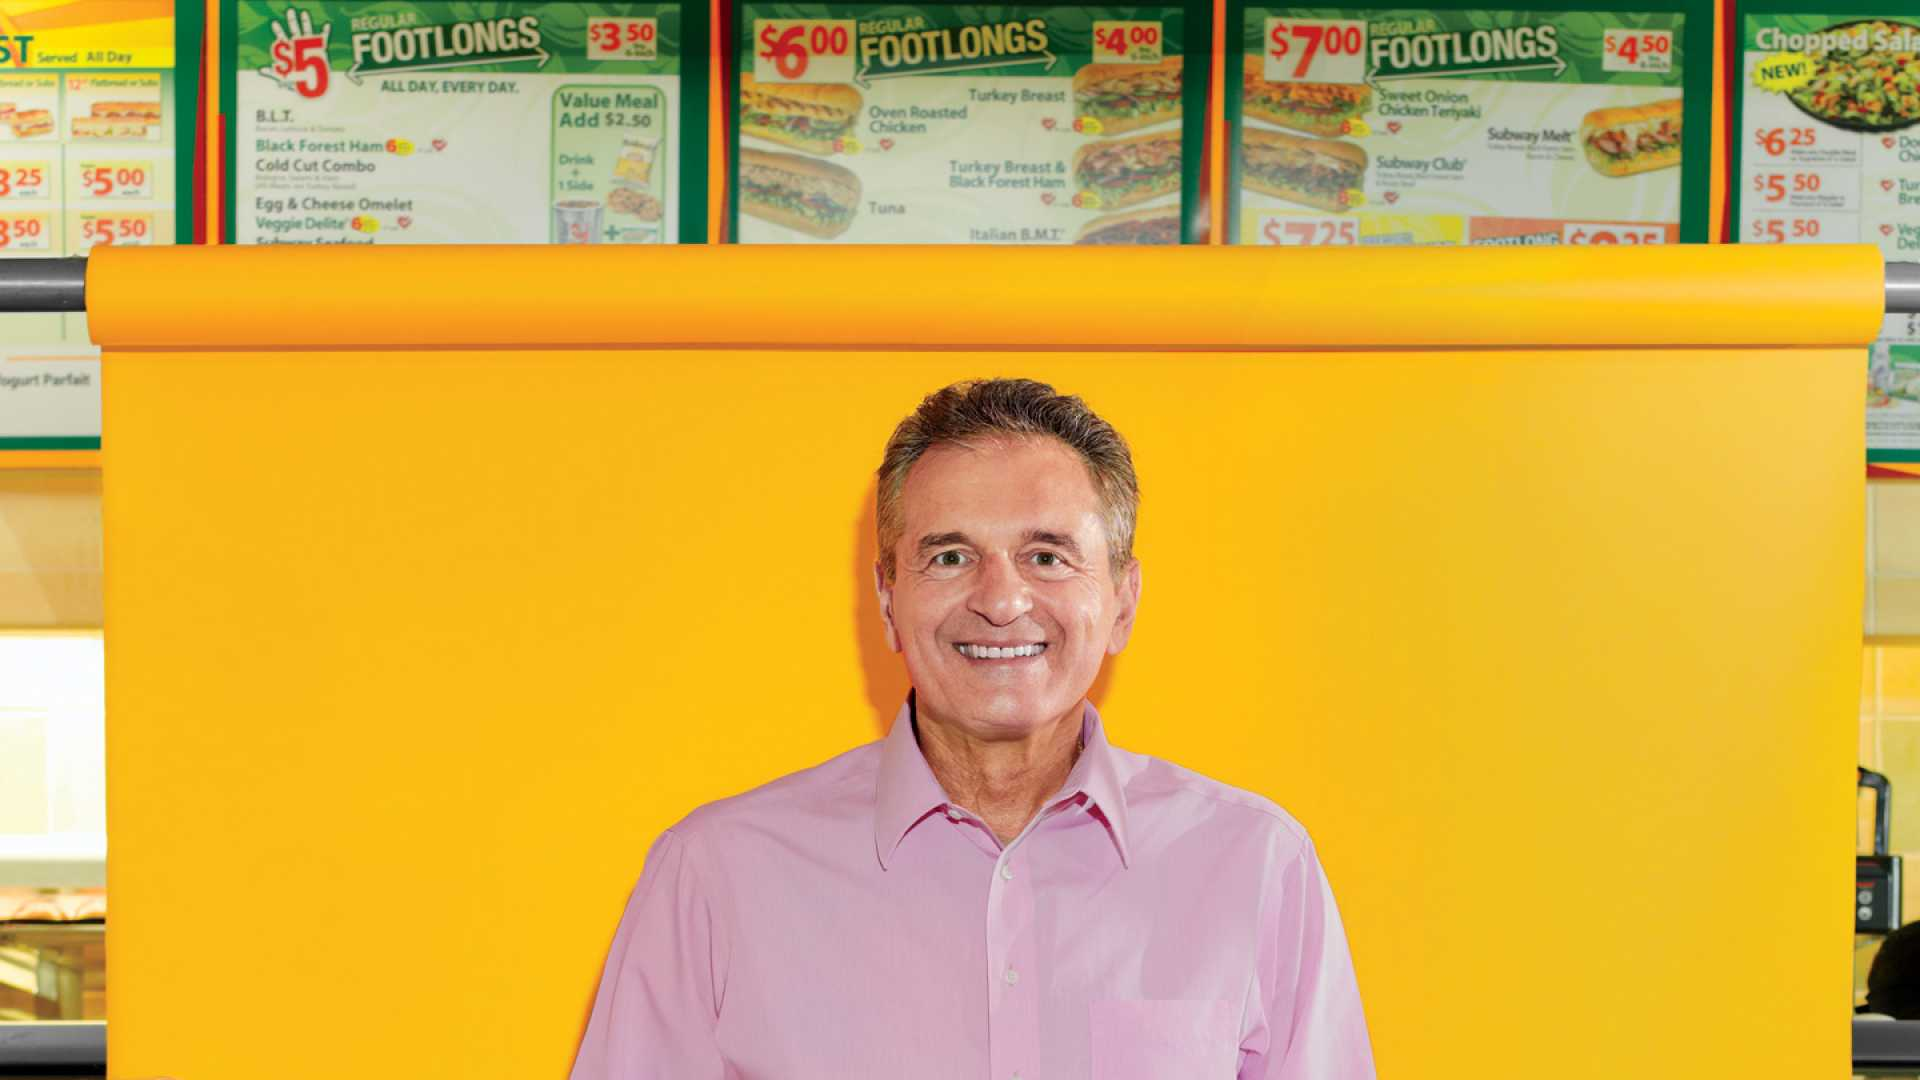 <b>Growth hunger:</b> Fred DeLuca built Subway into the world's biggest restaurant chain.